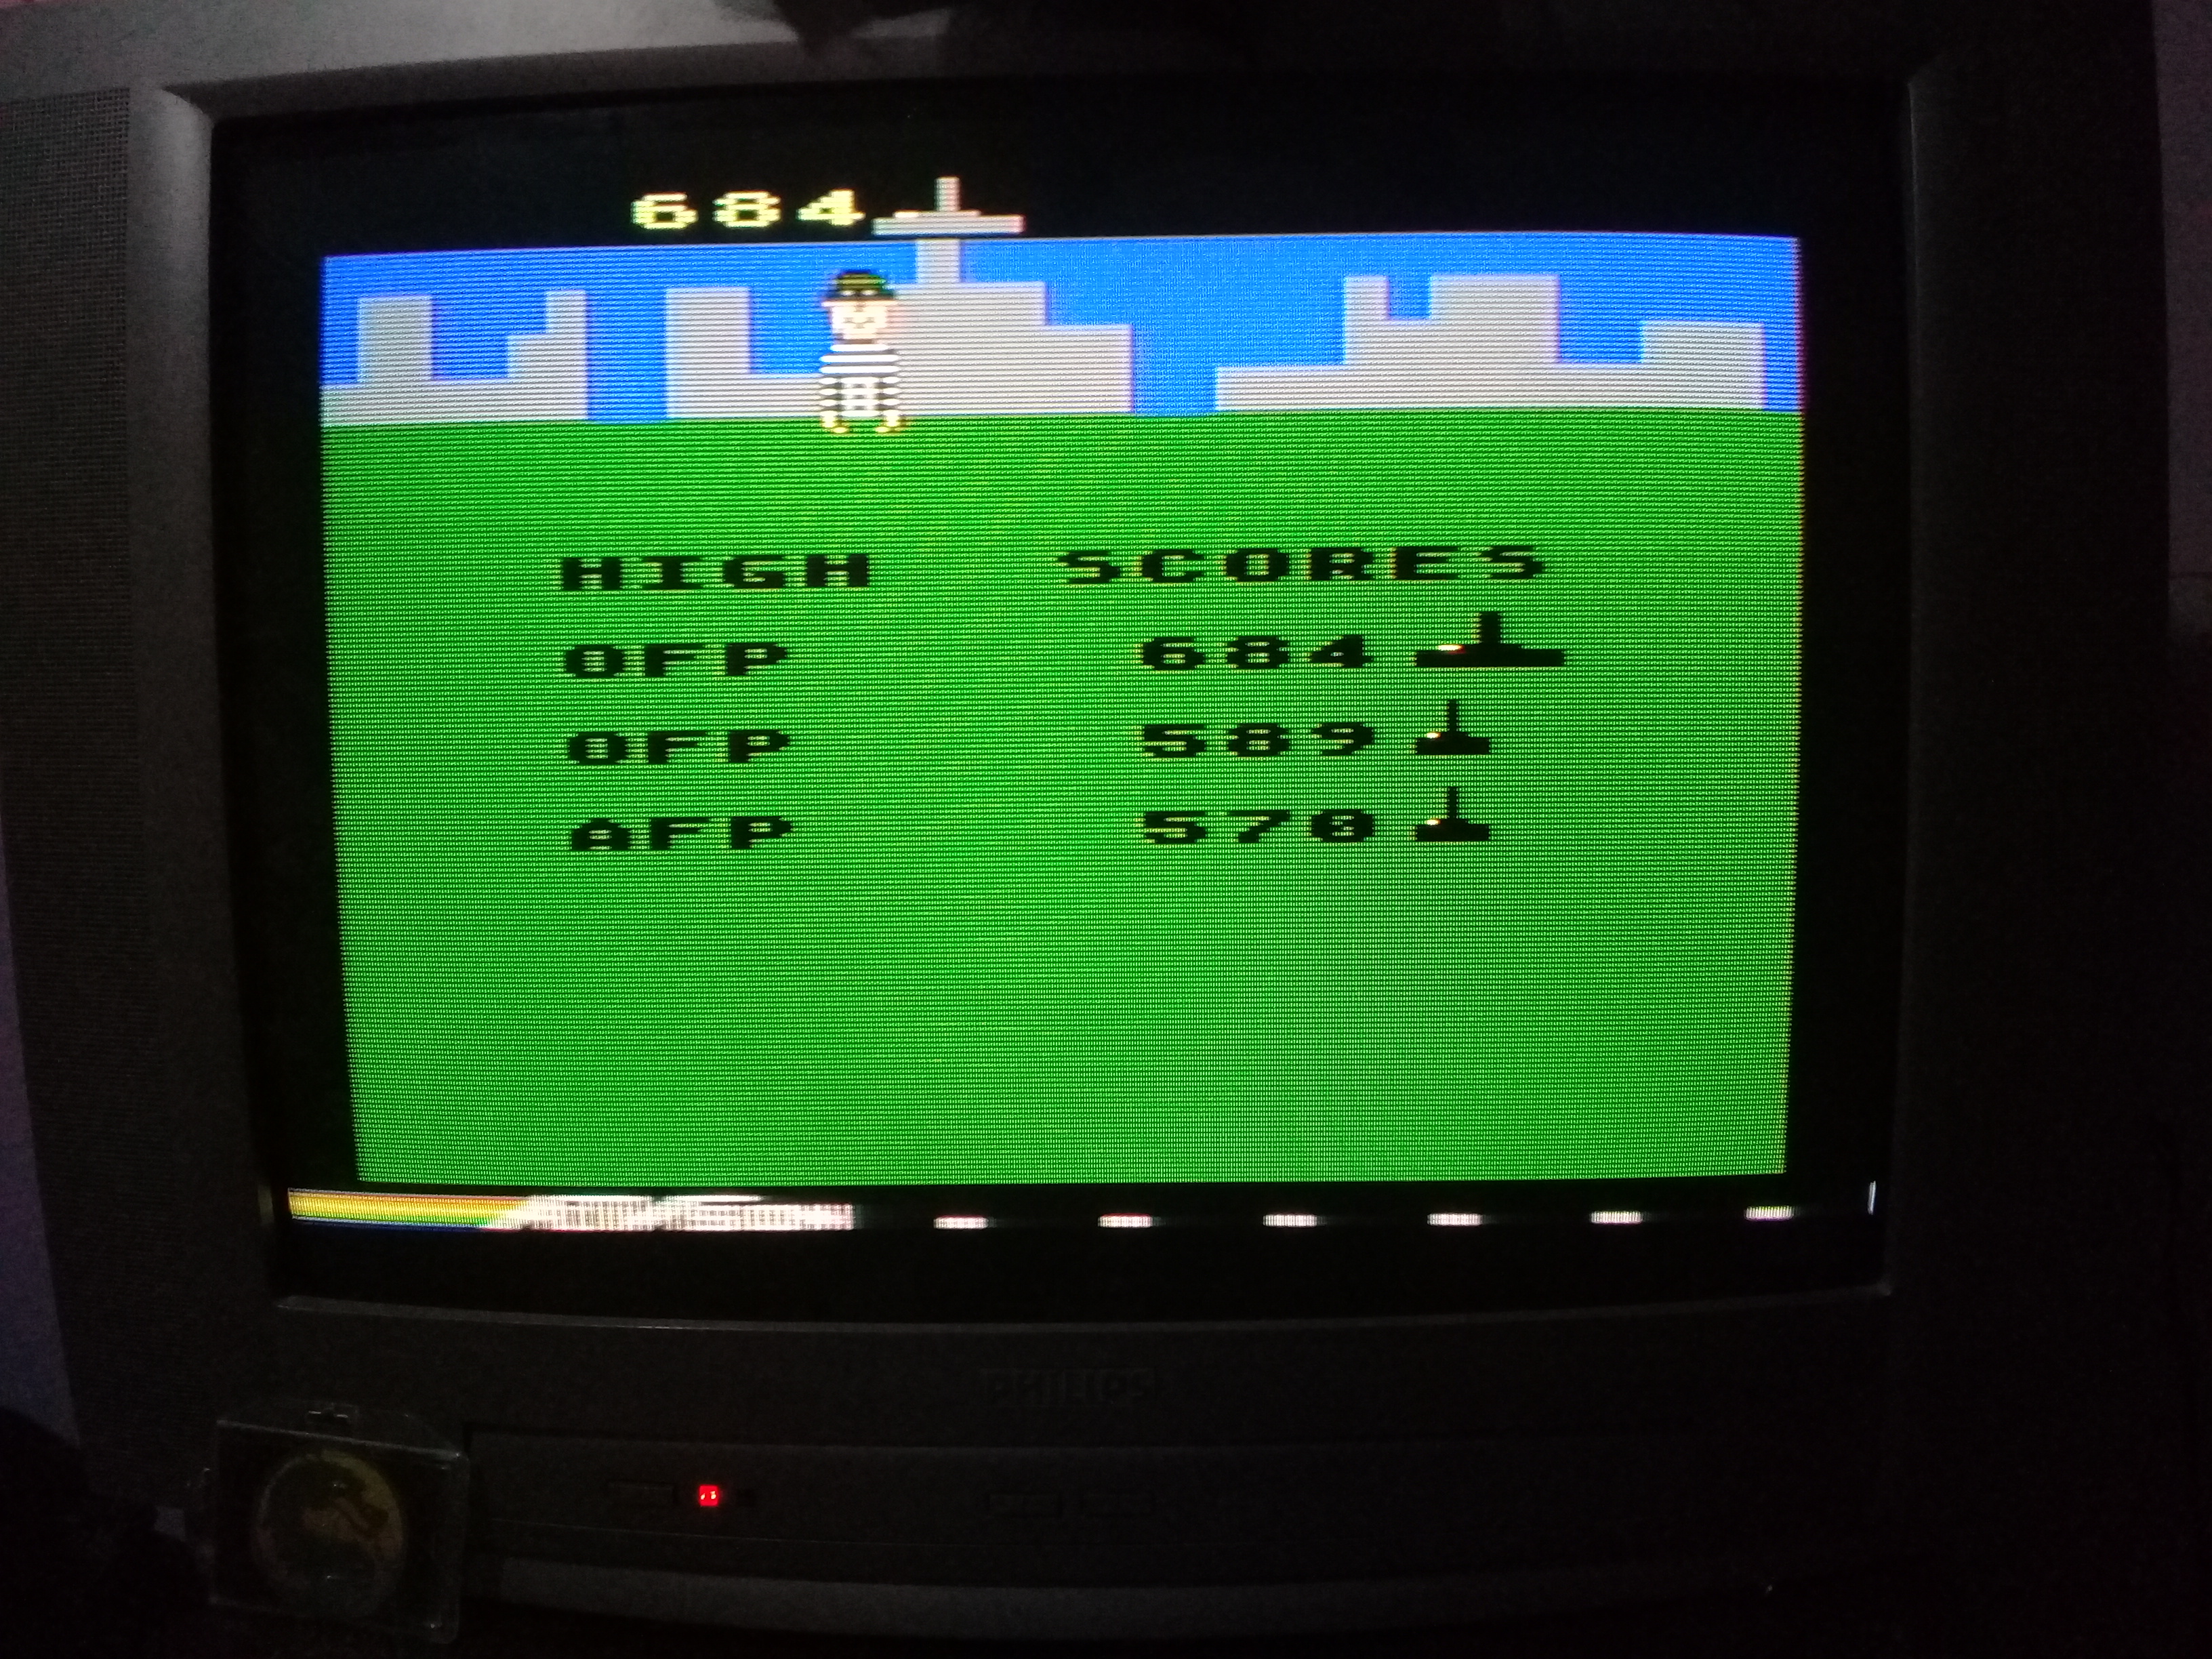 omargeddon: Kaboom: Large Buckets (Atari 400/800/XL/XE) 684 points on 2020-03-09 00:50:28